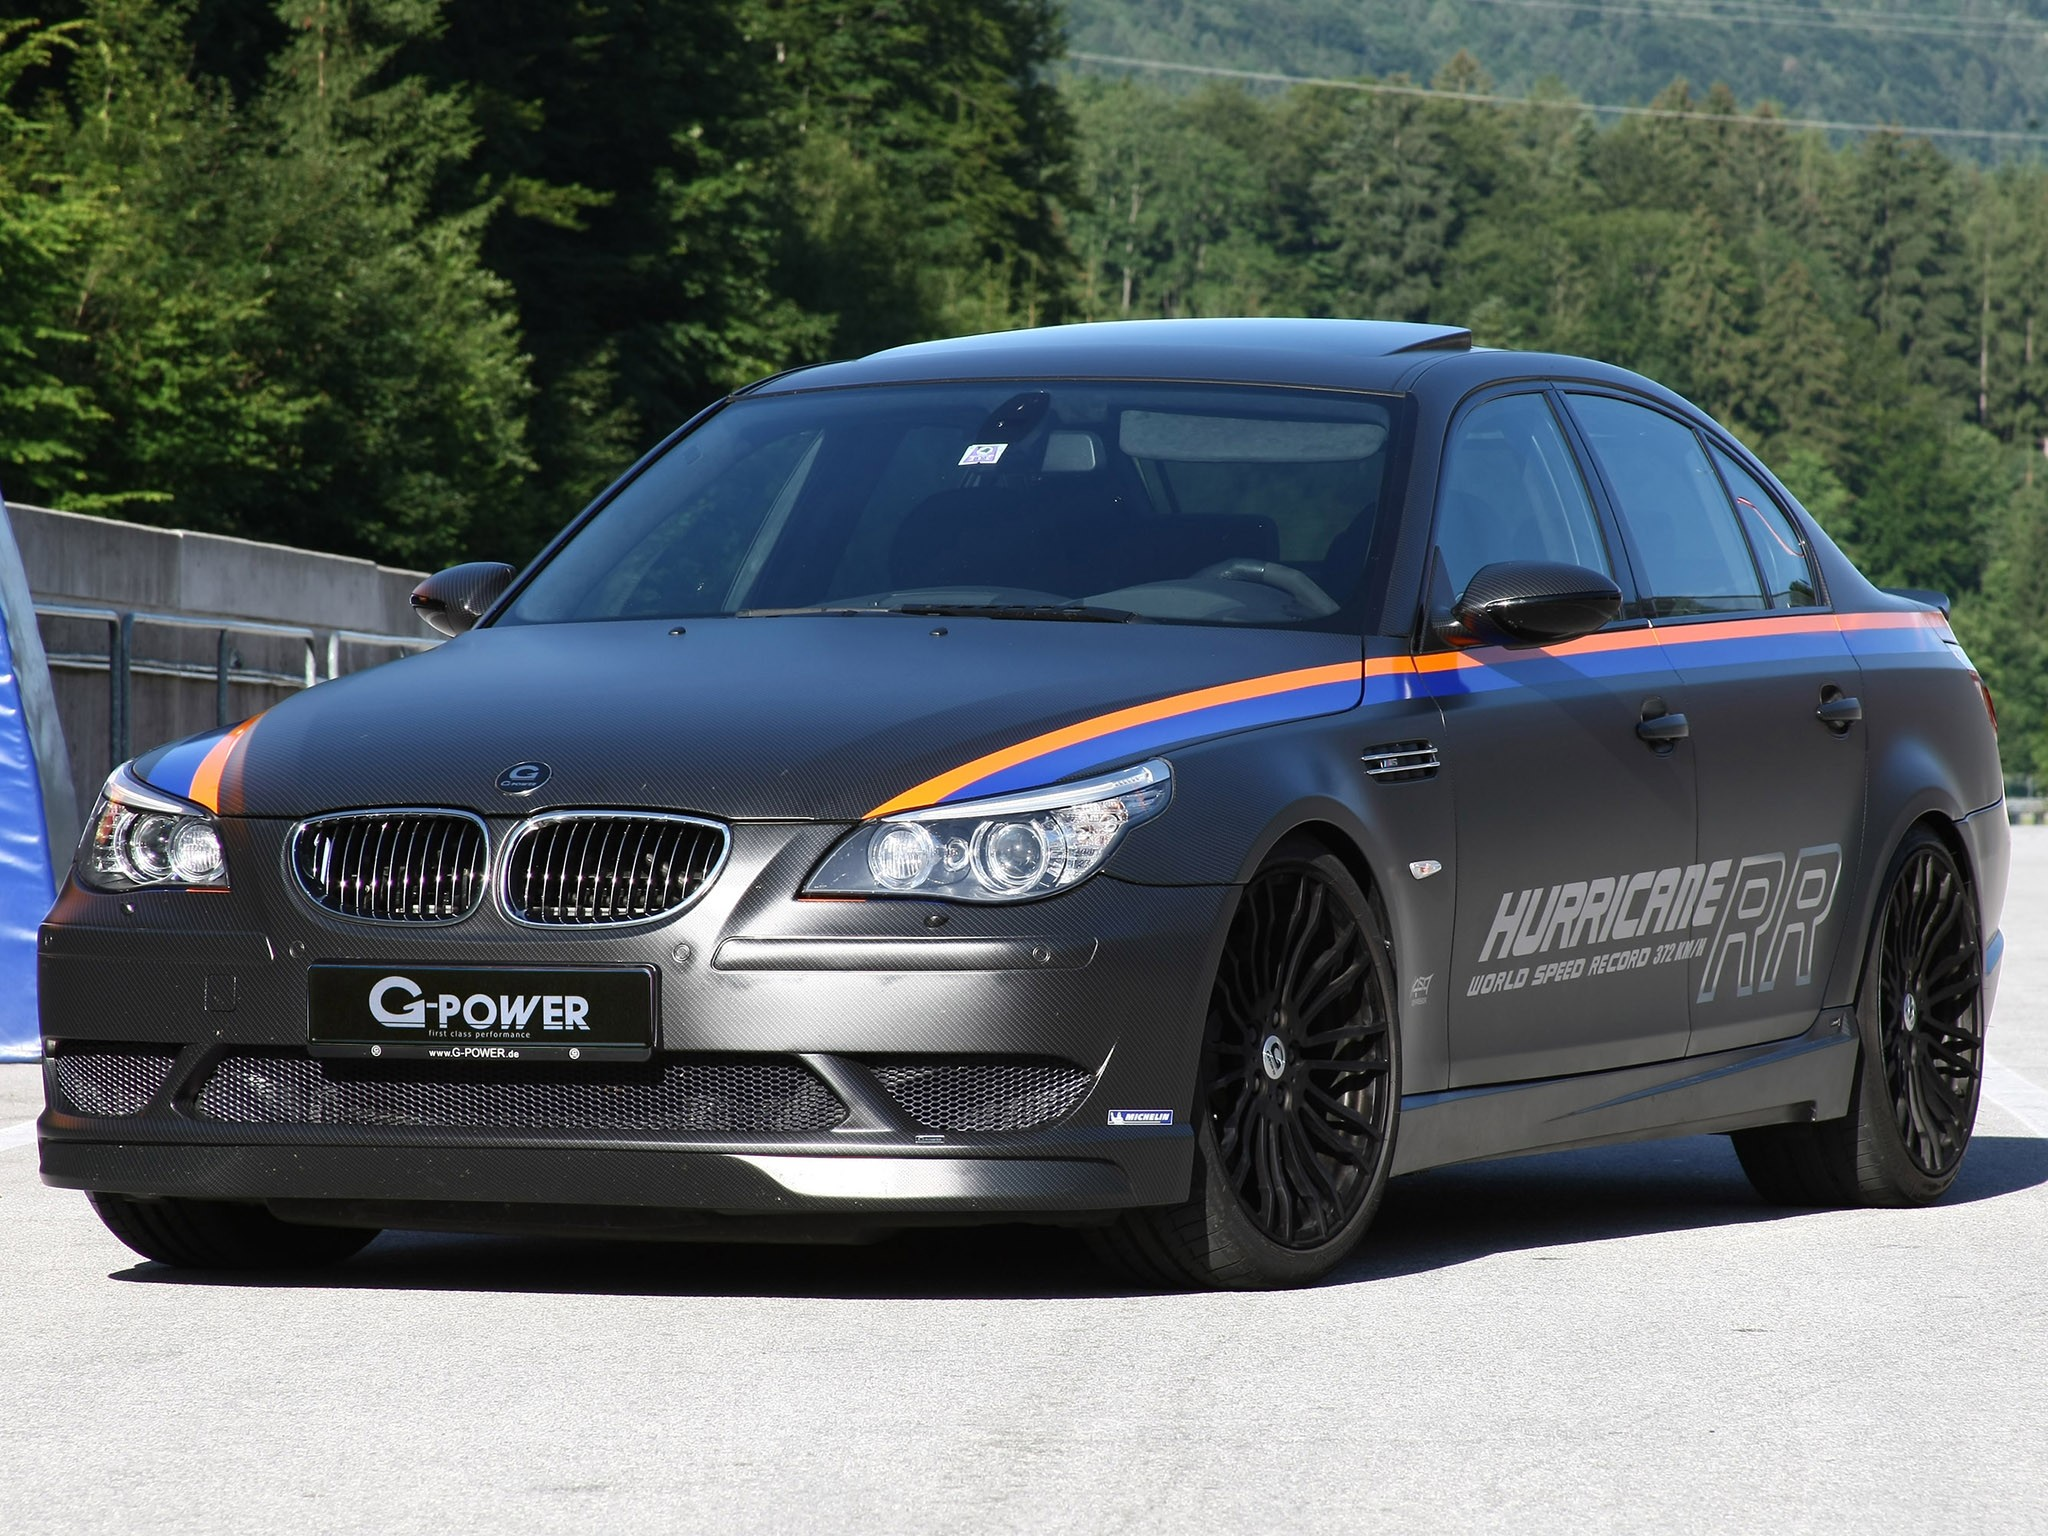 2010 G-power - Bmw M5 Hurricane RR